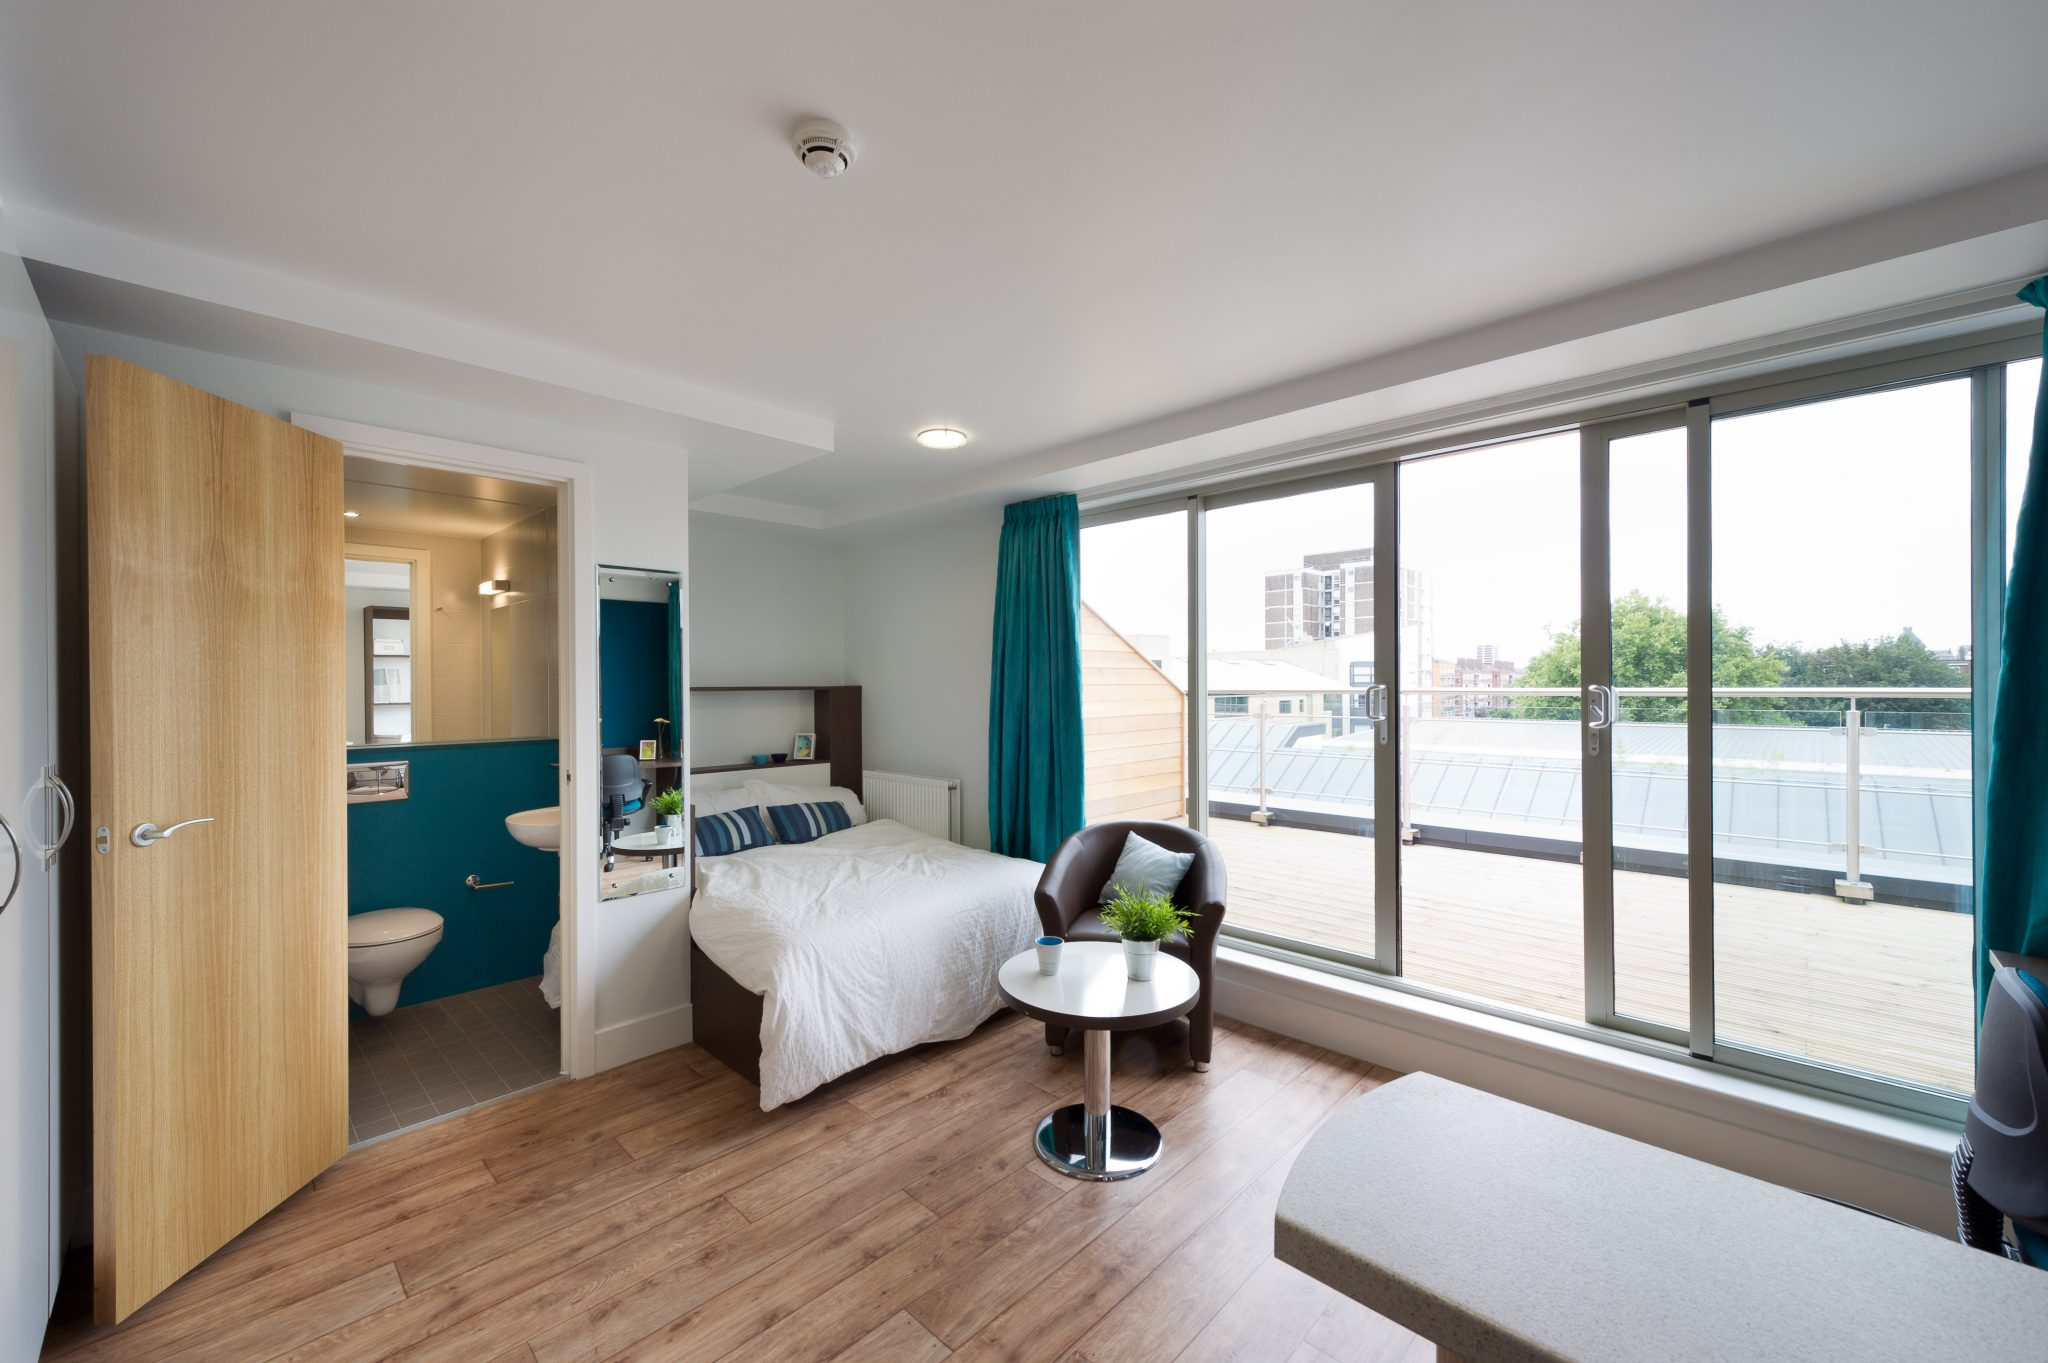 STUDENT HOMES LANCASTER ? IT'S EASY IF YOU DO IT SMART